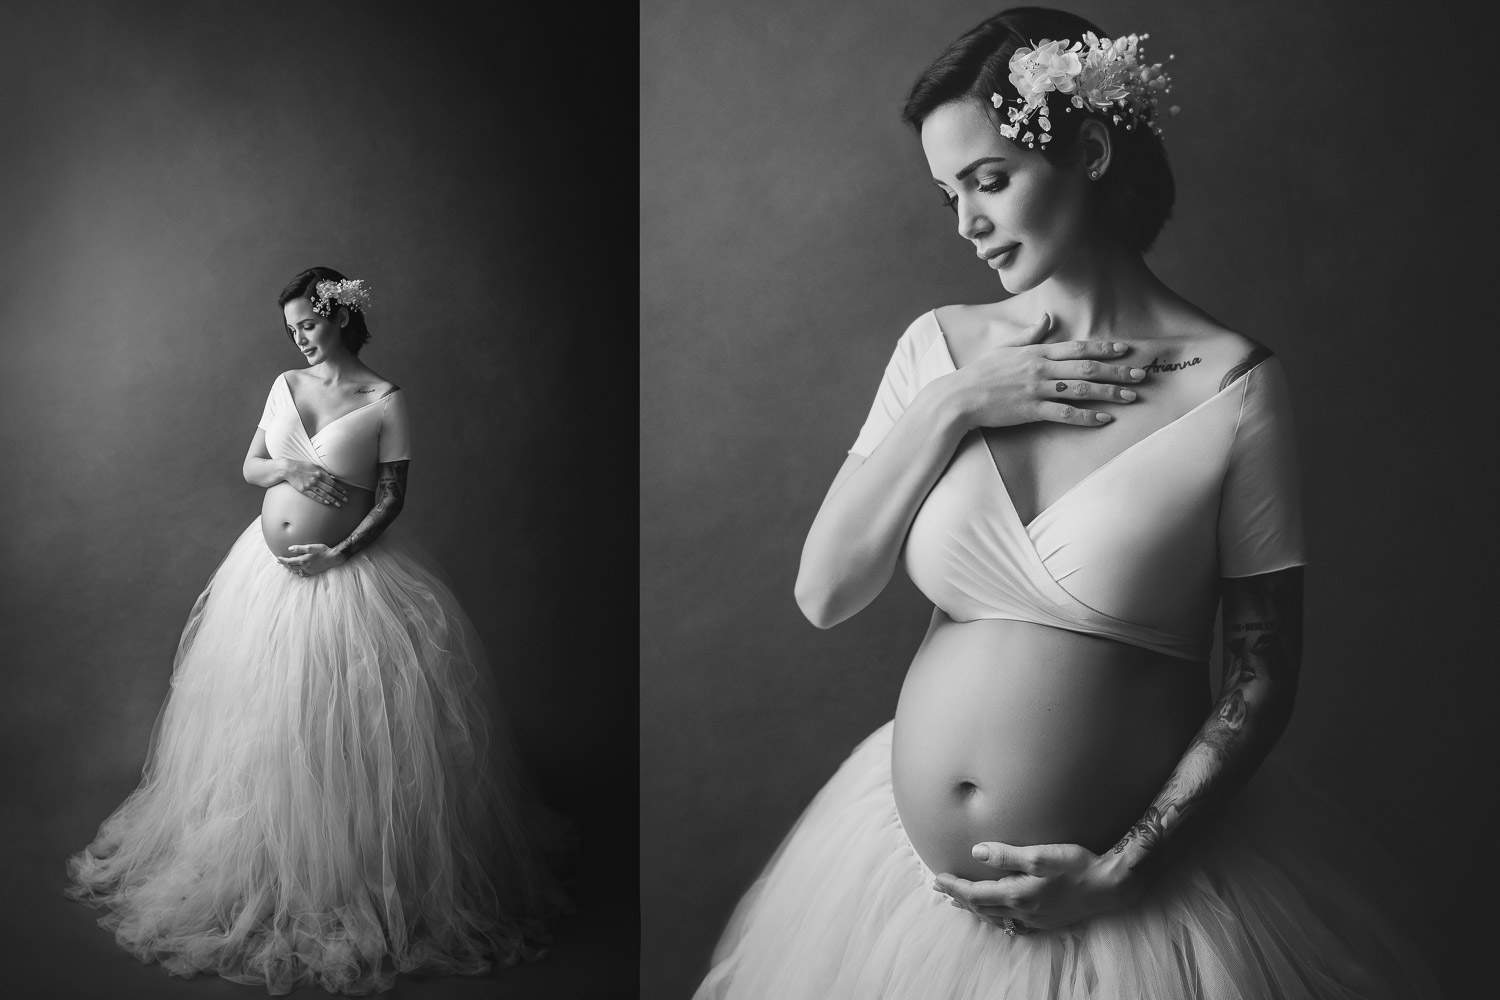 glamorous pregnancy photo with skirt tutu with maternity photography vancouver